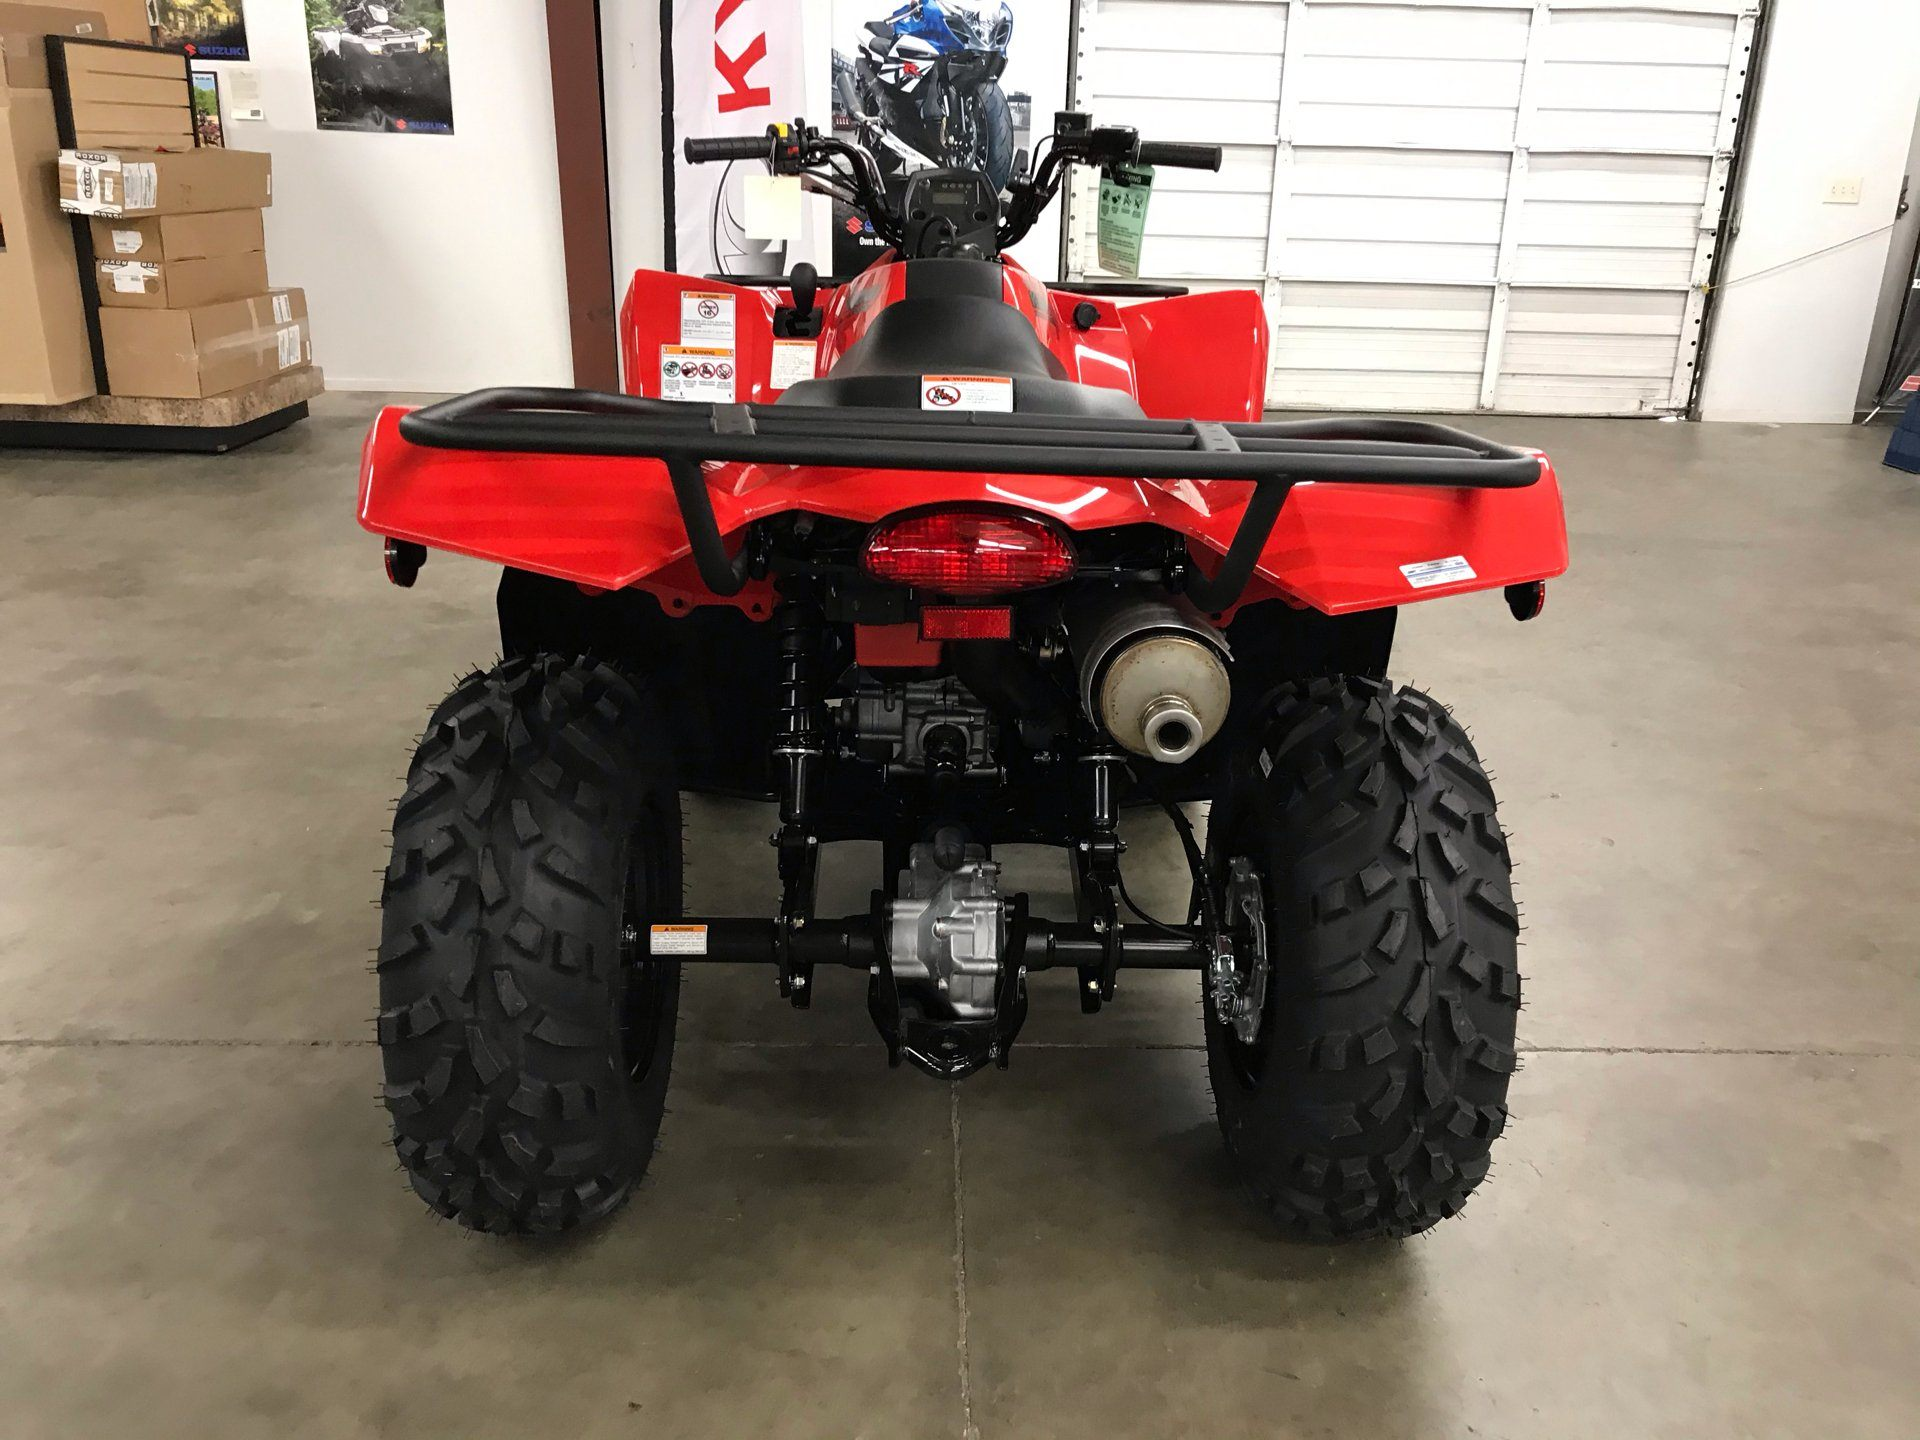 2021 Suzuki KingQuad 400ASi in Sanford, North Carolina - Photo 7